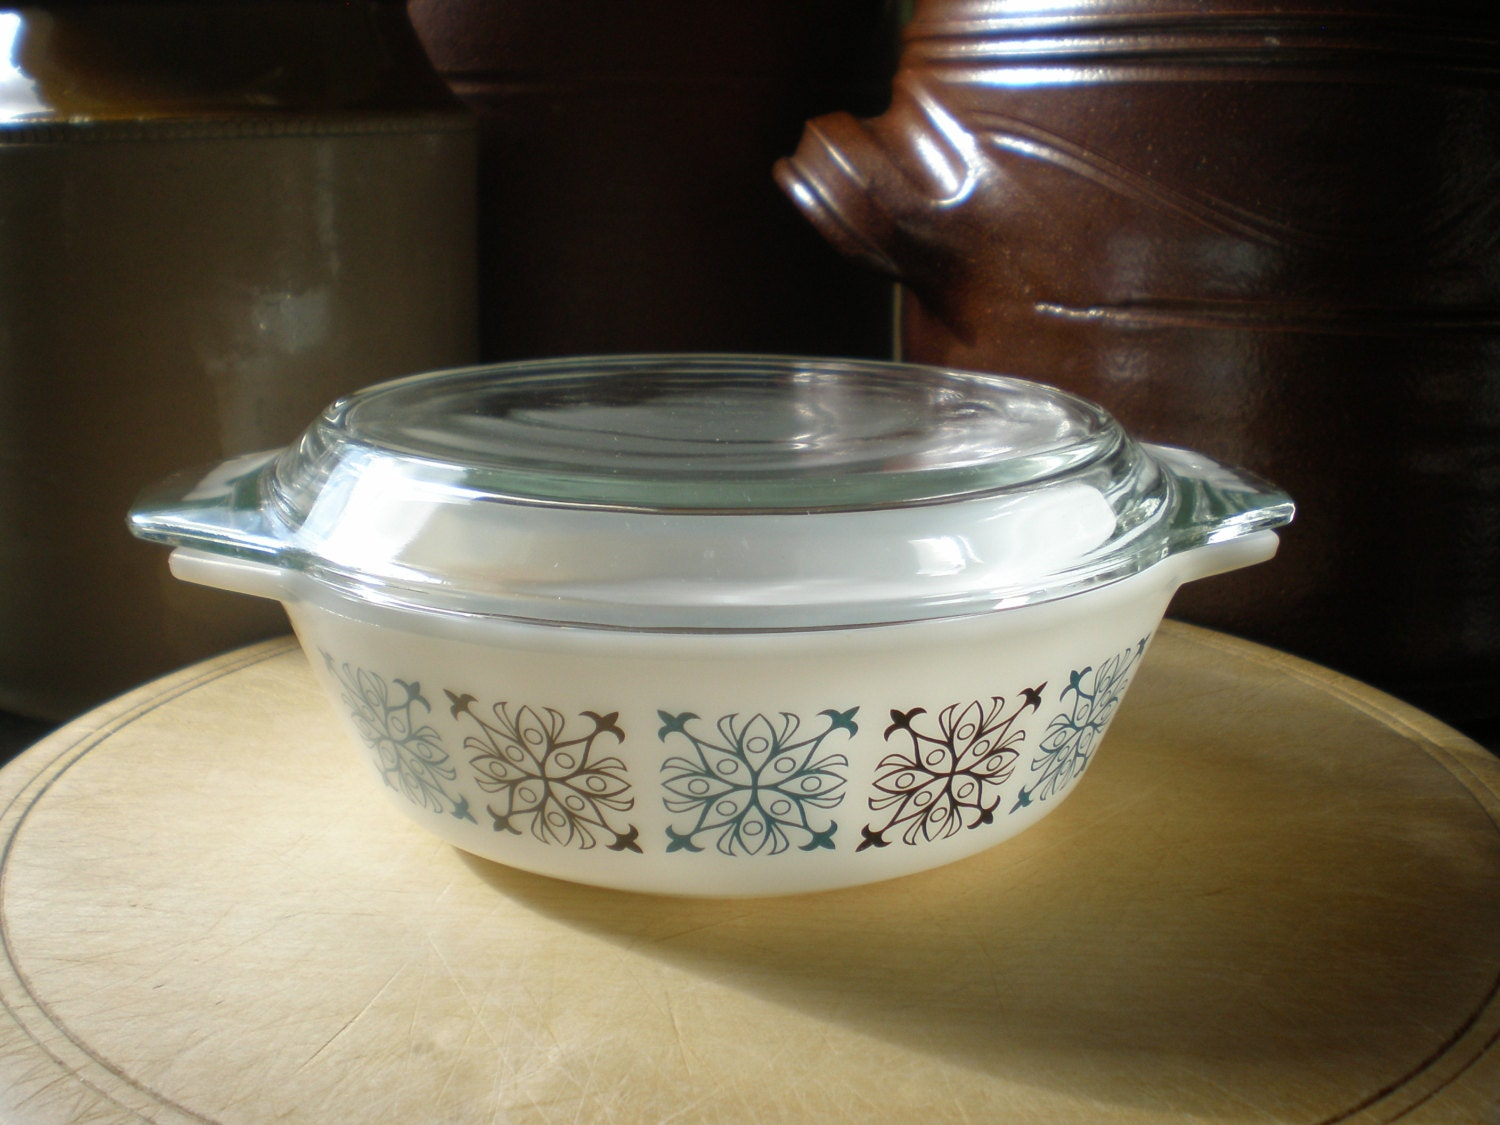 dating jaj pyrex As the agee pyrex period was so long, some extra information is given below to help with dating most jaj pyrex is clearly marked england or made in england.